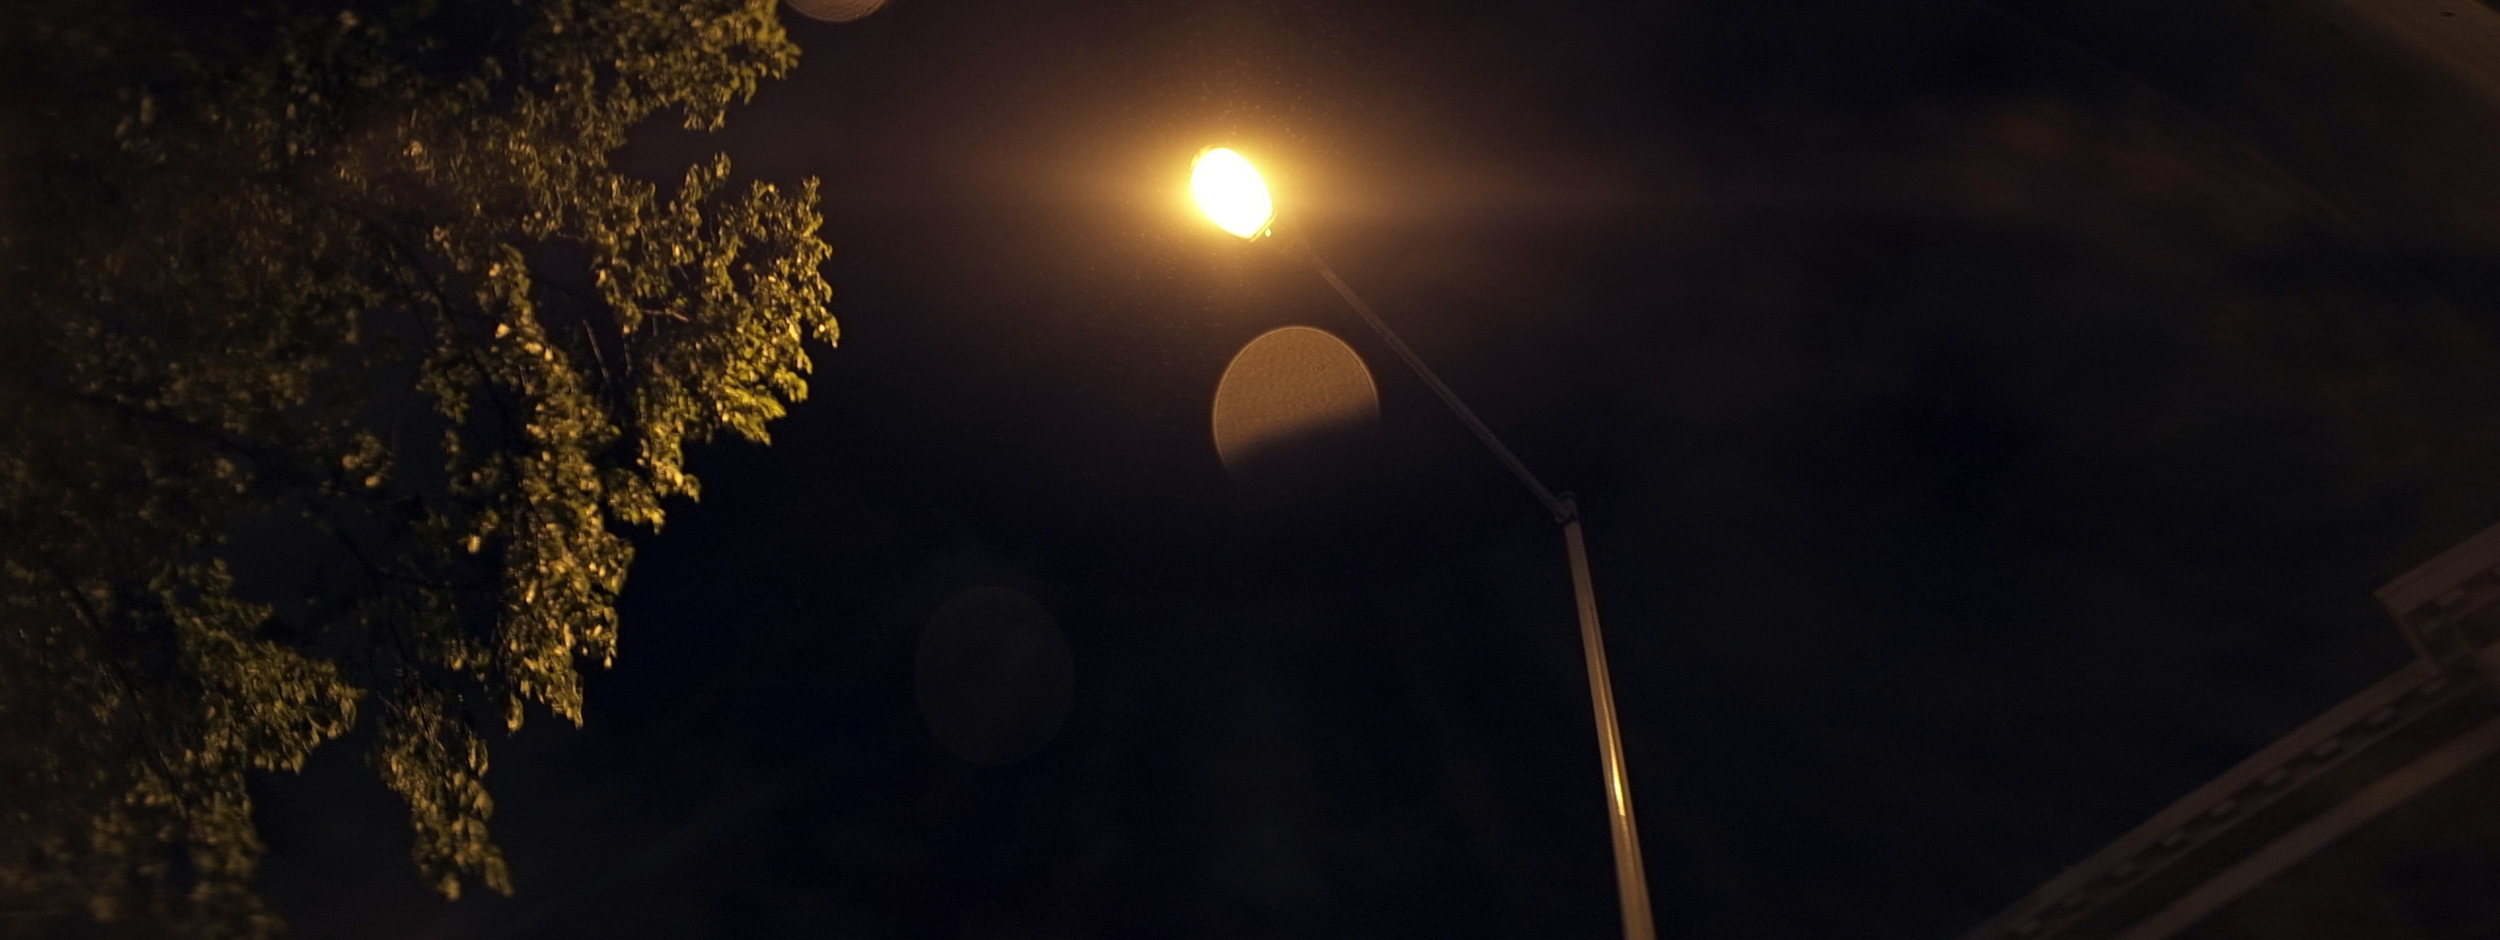 Elite 24.5mm anamorphic | Washington D.C. - Street lamp on axis giving a blooming type of horizontal flare. Wide open at T2.1. Photo by Keith Nickoson.